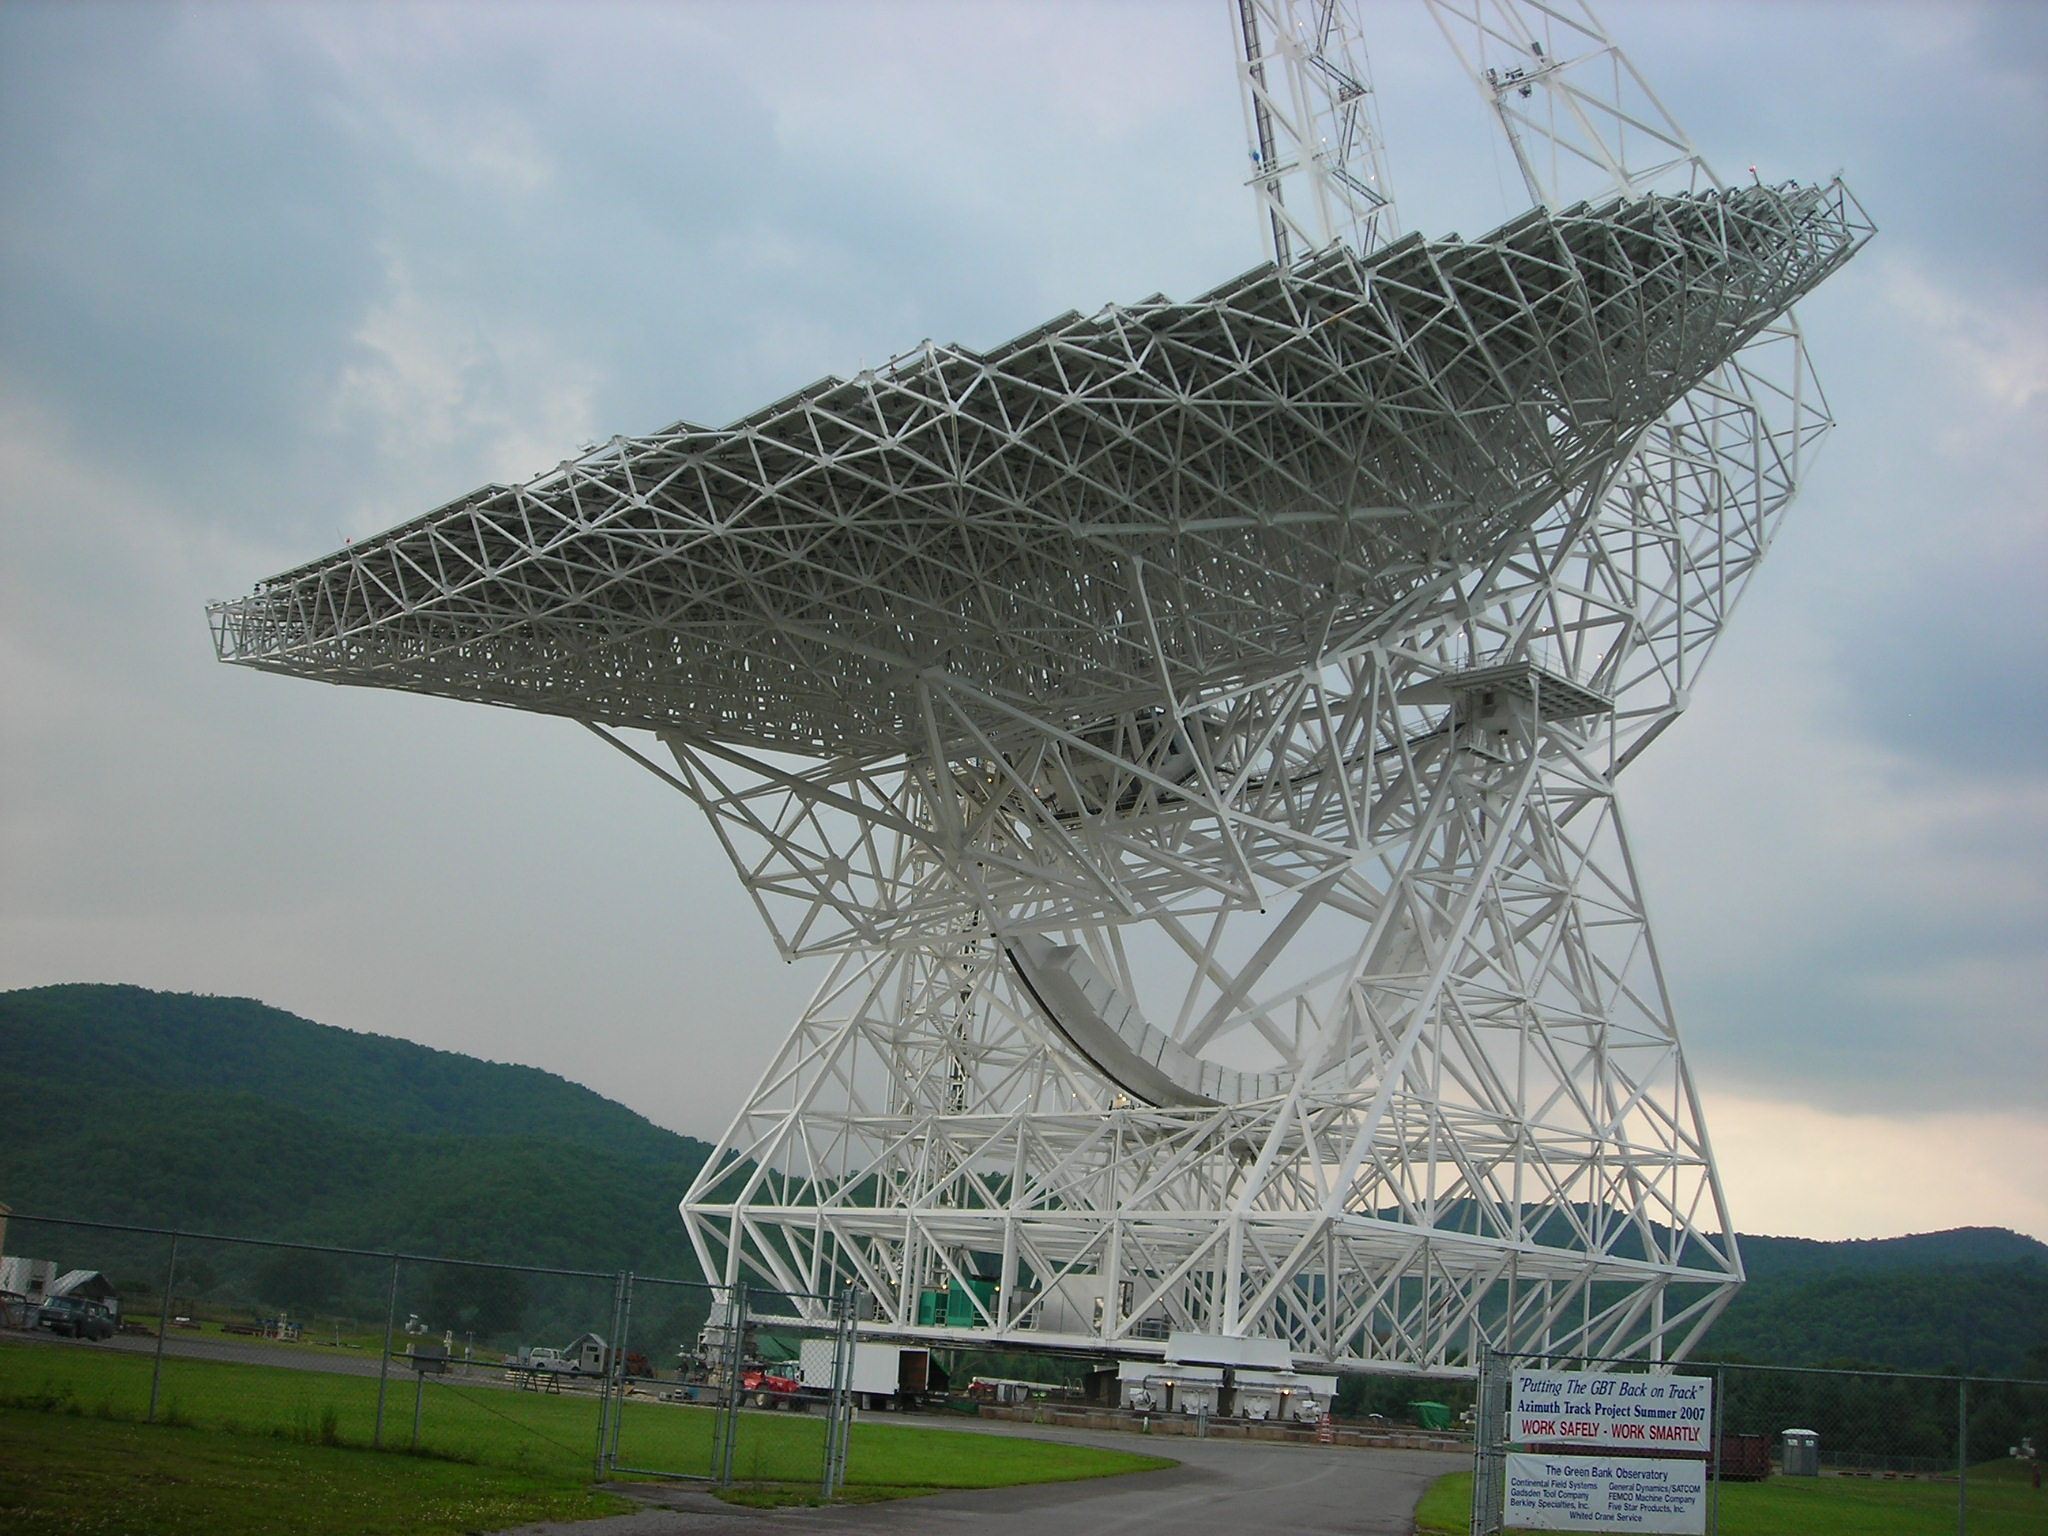 Green Bank Telescope by Darlene Pavek